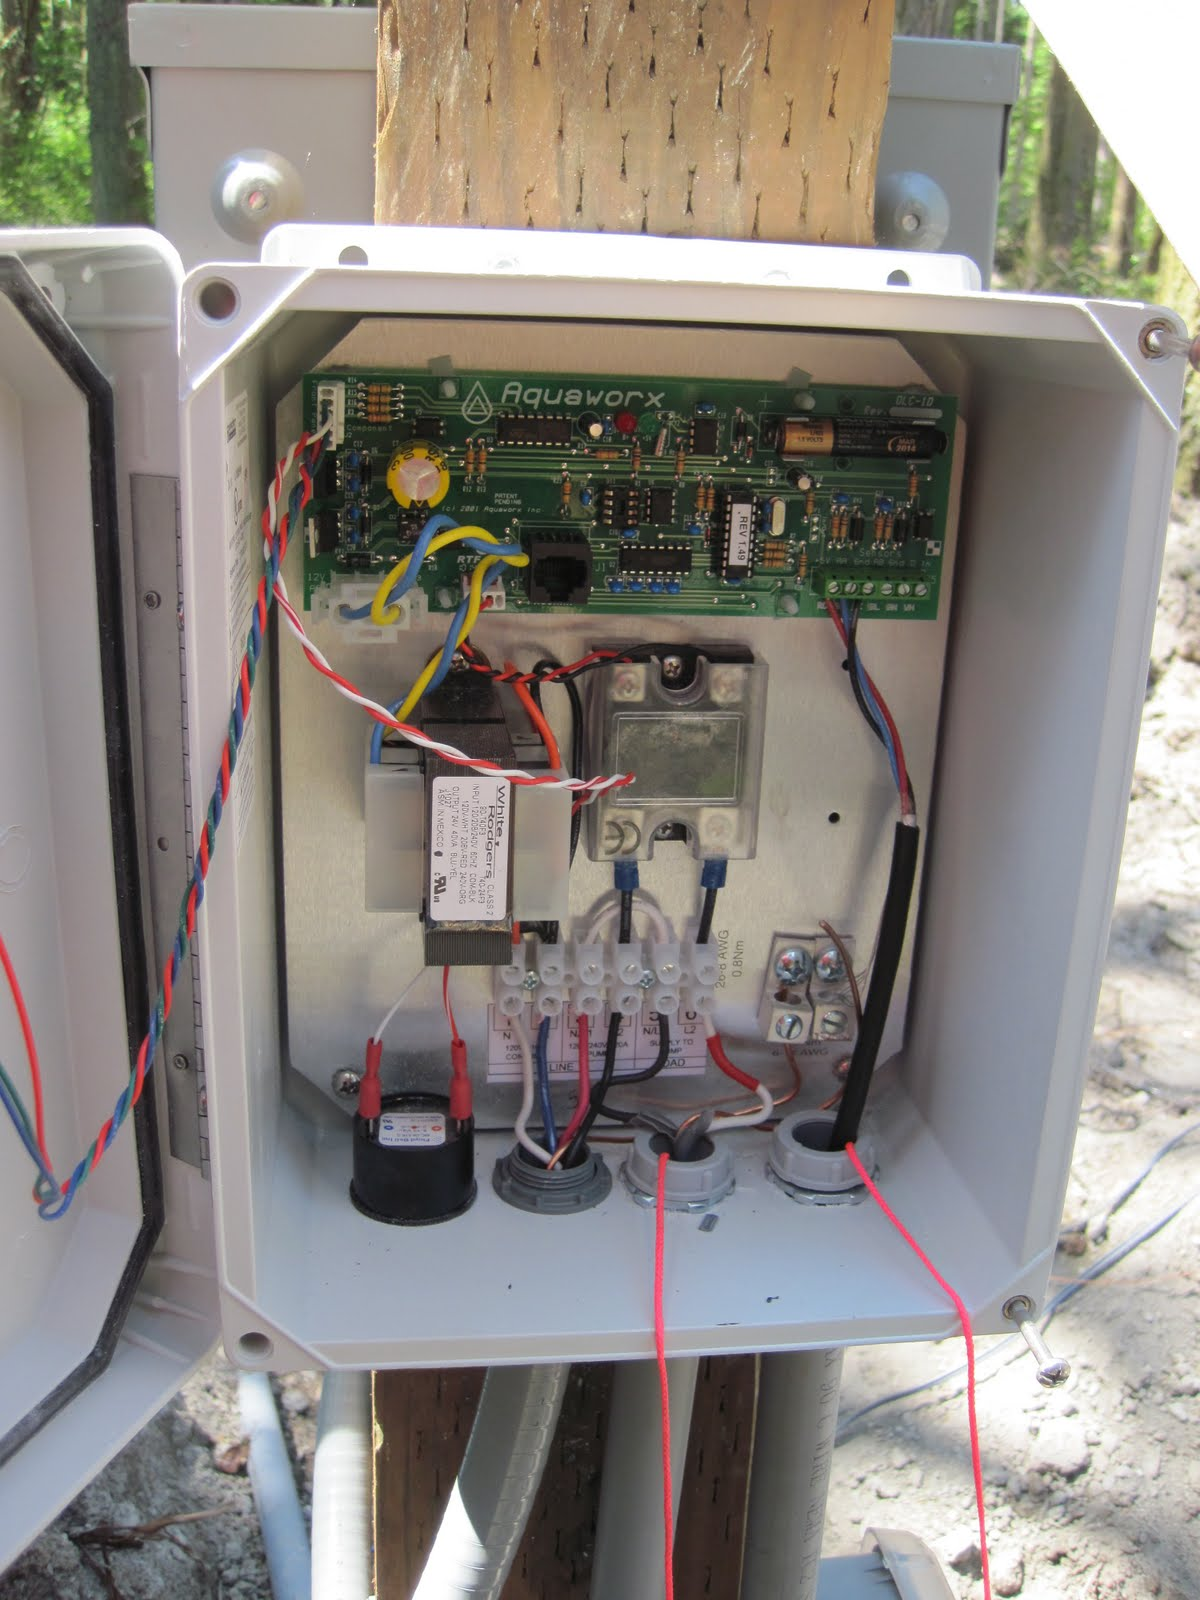 Septic Pump Alarm Wiring - Wiring Liry • Ahotel.co on septic electrical wiring diagram, septic system wiring diagram, septic alarm system,